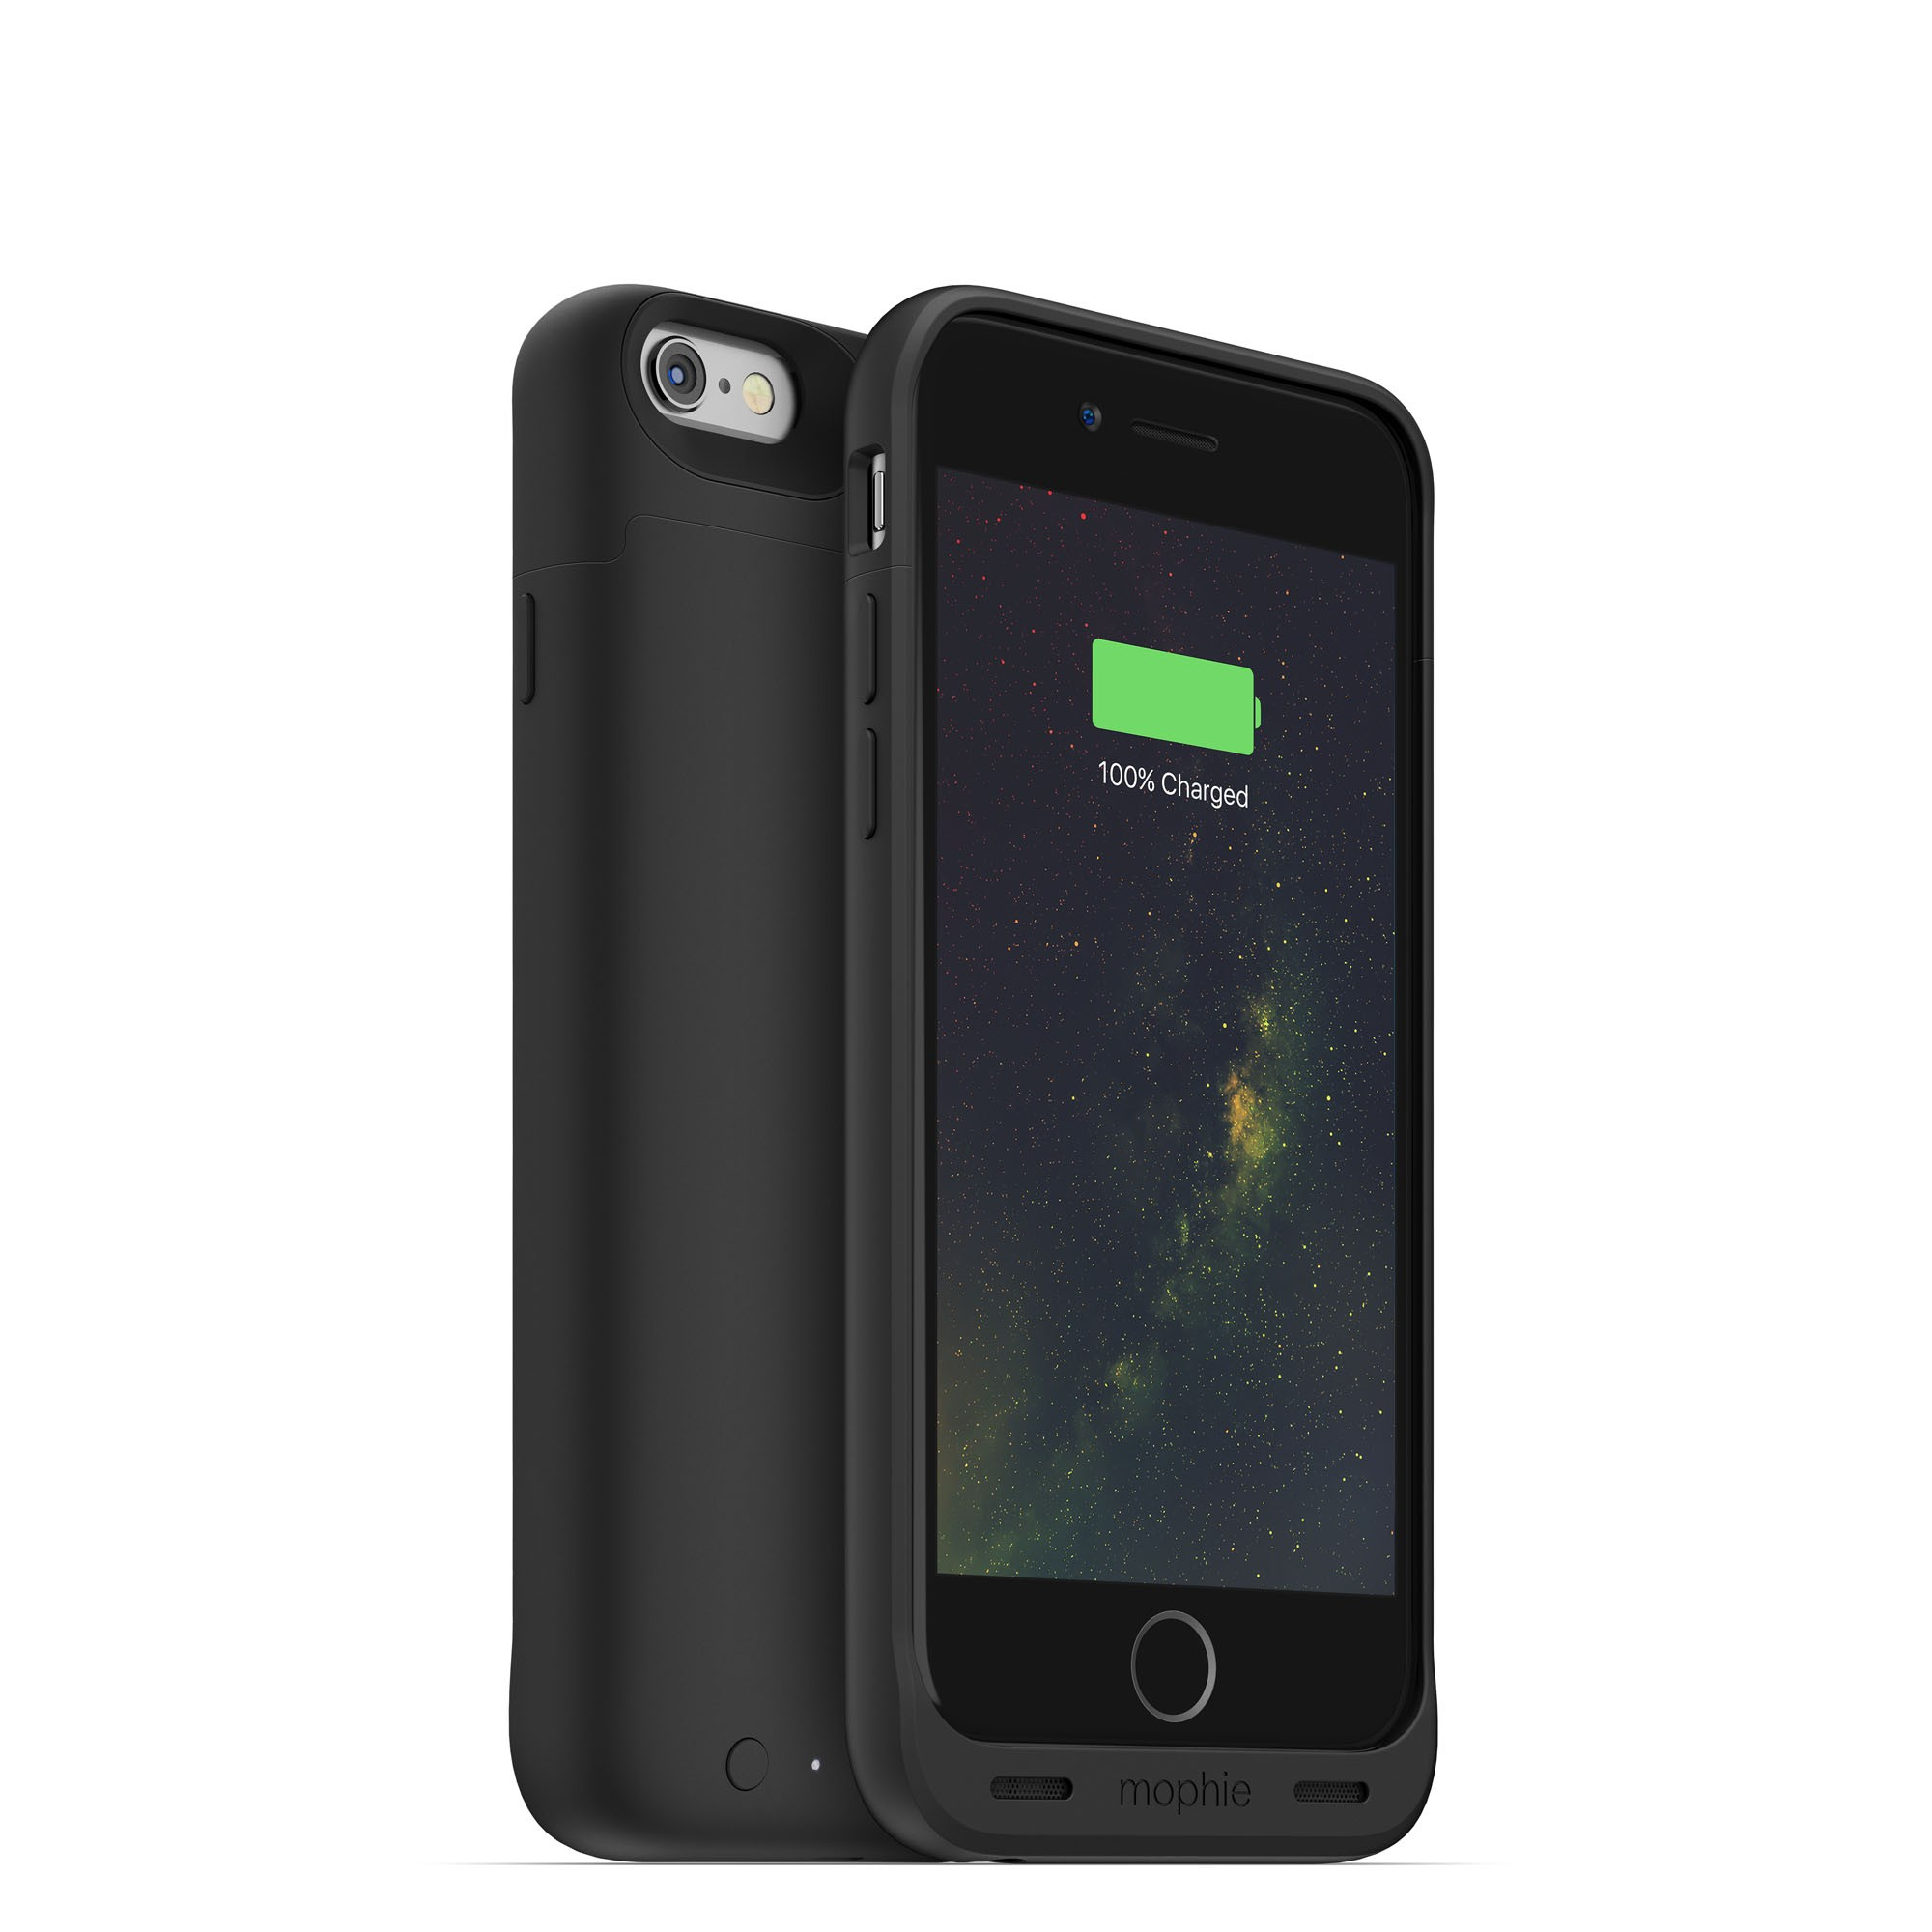 iphone charger case iphone 6s